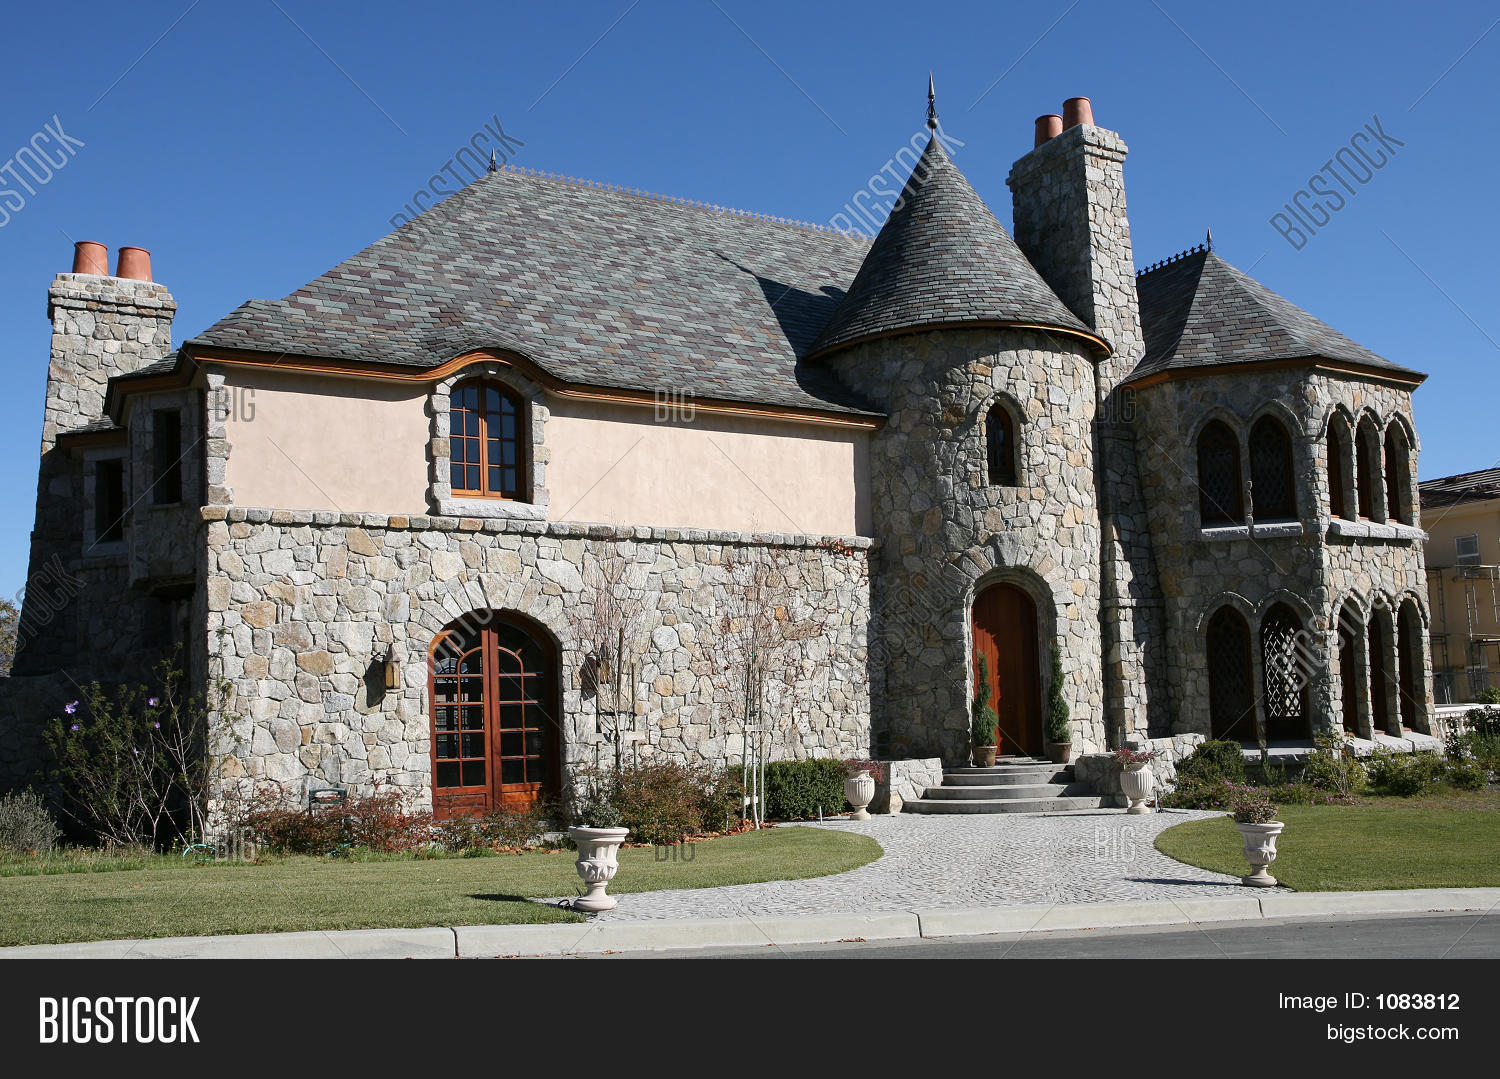 Castle style home image photo bigstock for Castle type house plans